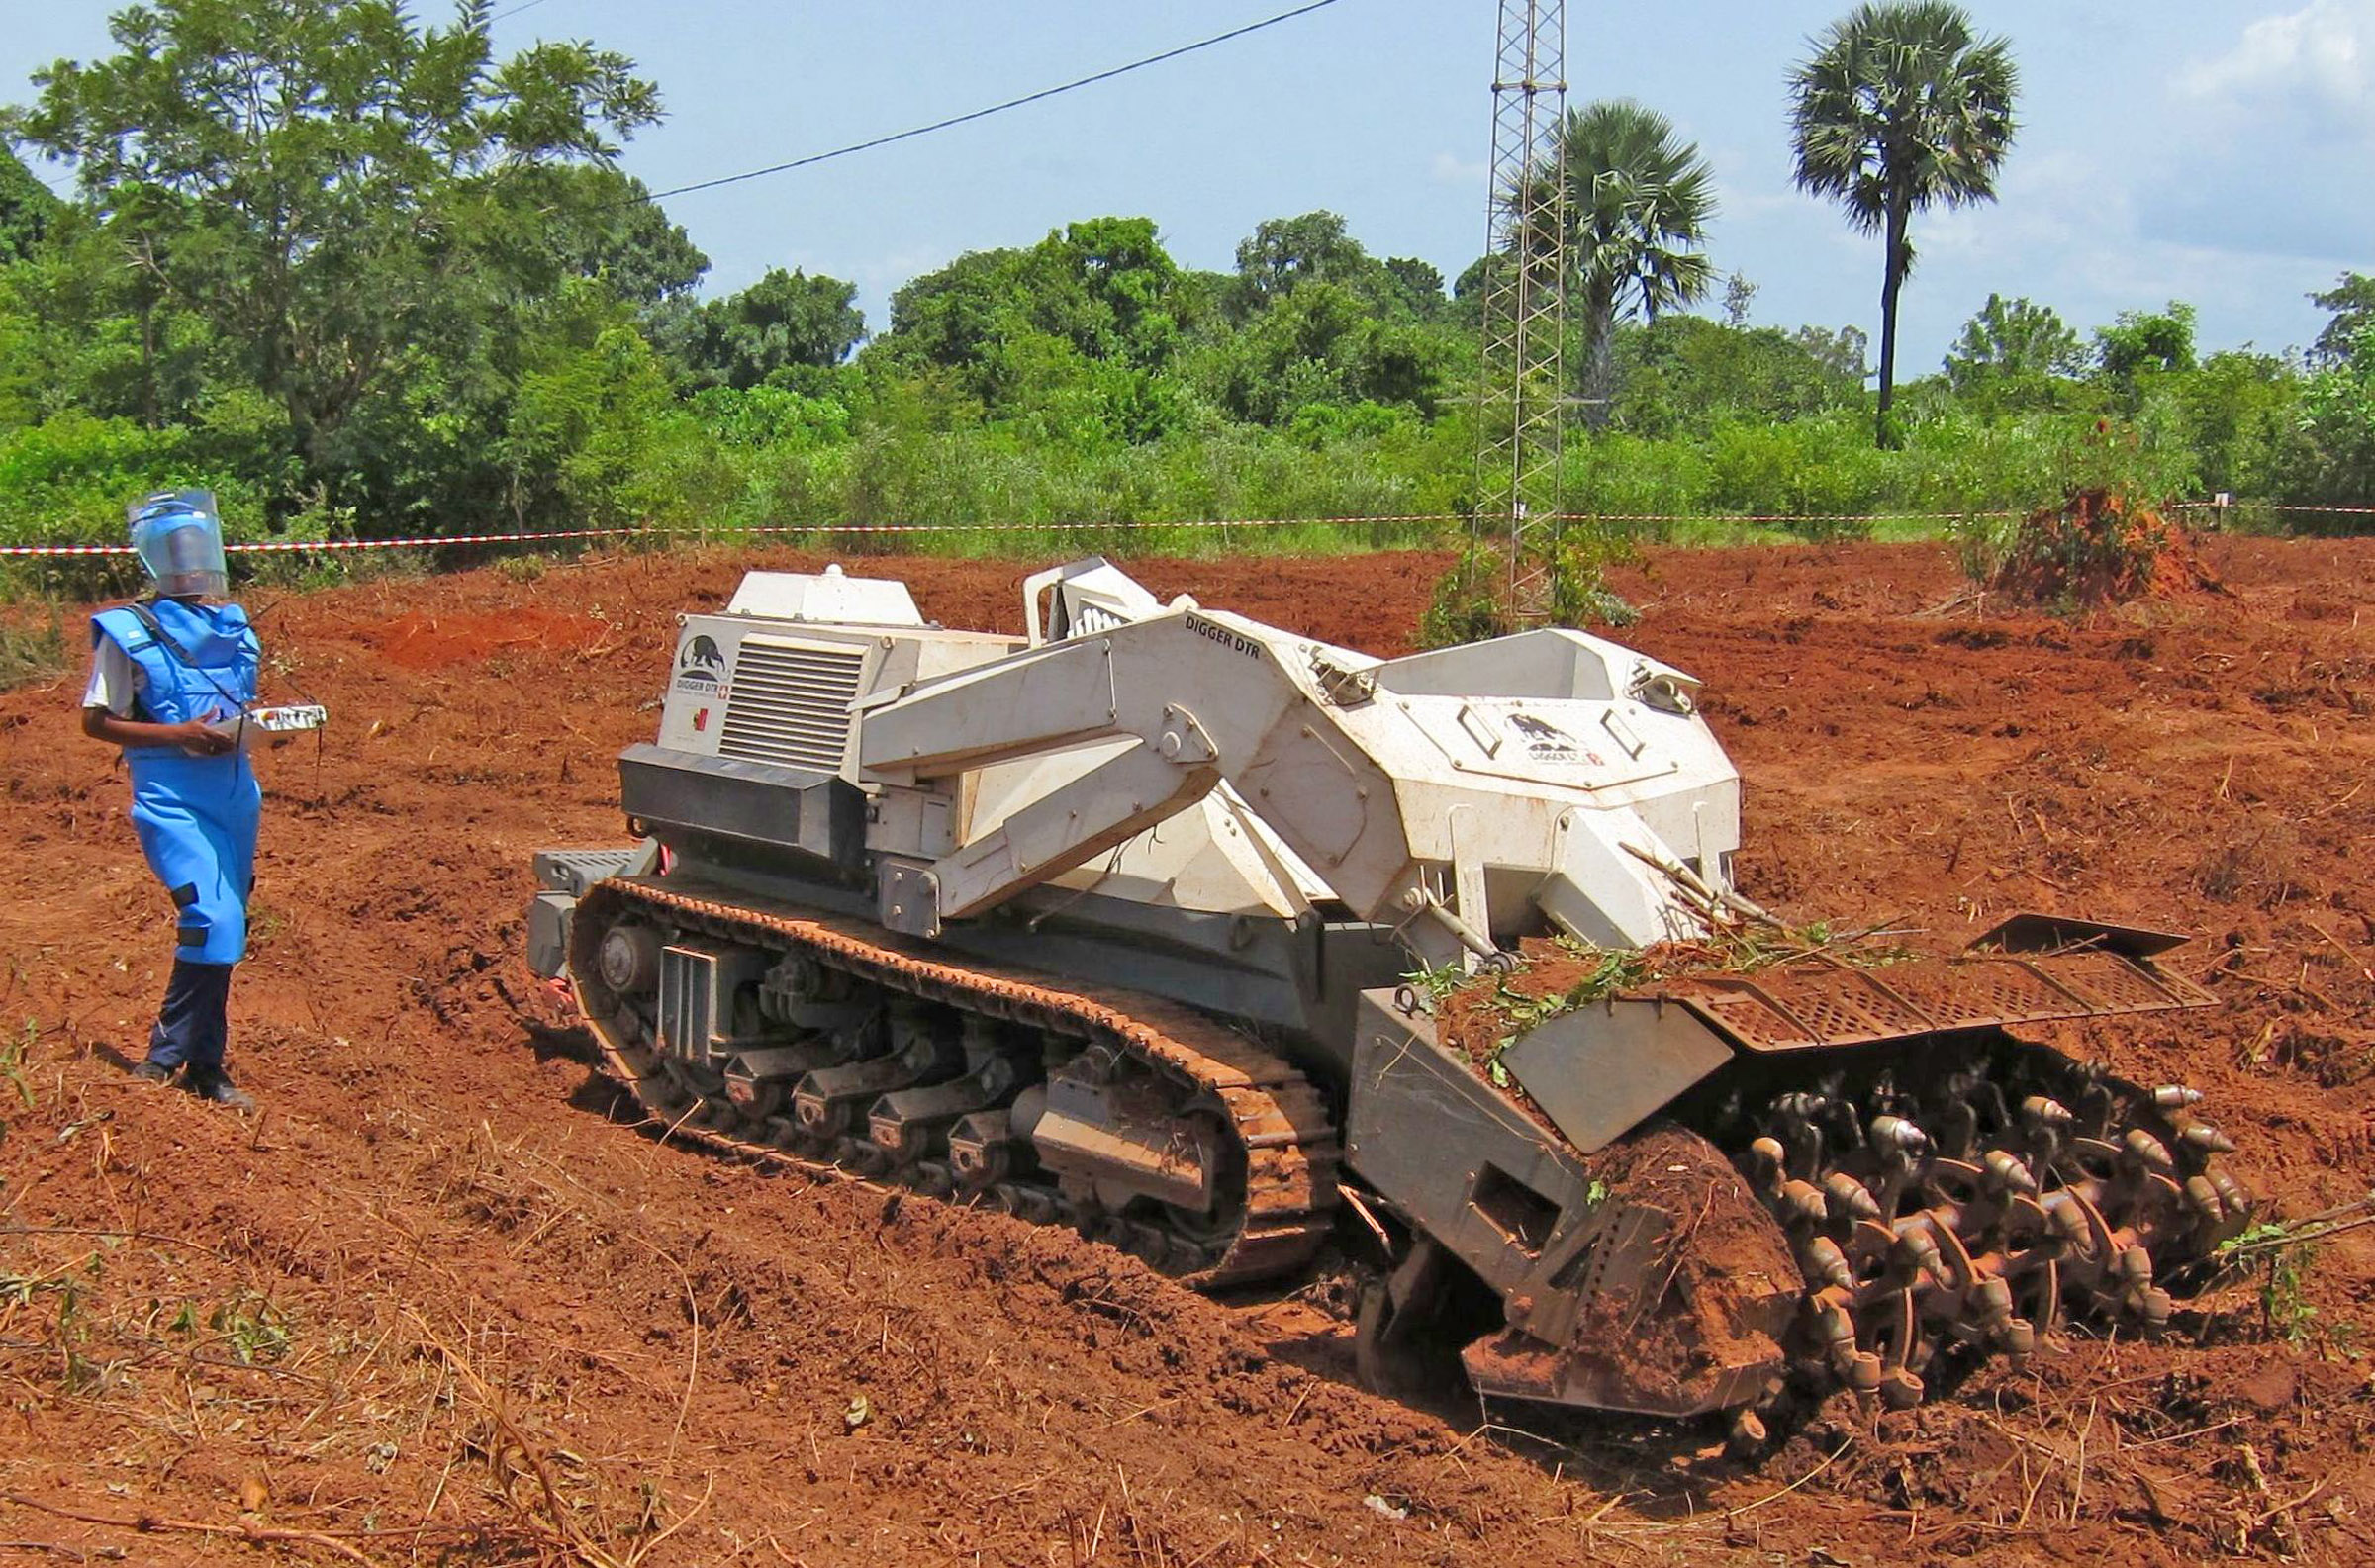 Maibata Sana demonstrates the Digger D-3 demining machine in Sindone, Casamance, Senegal